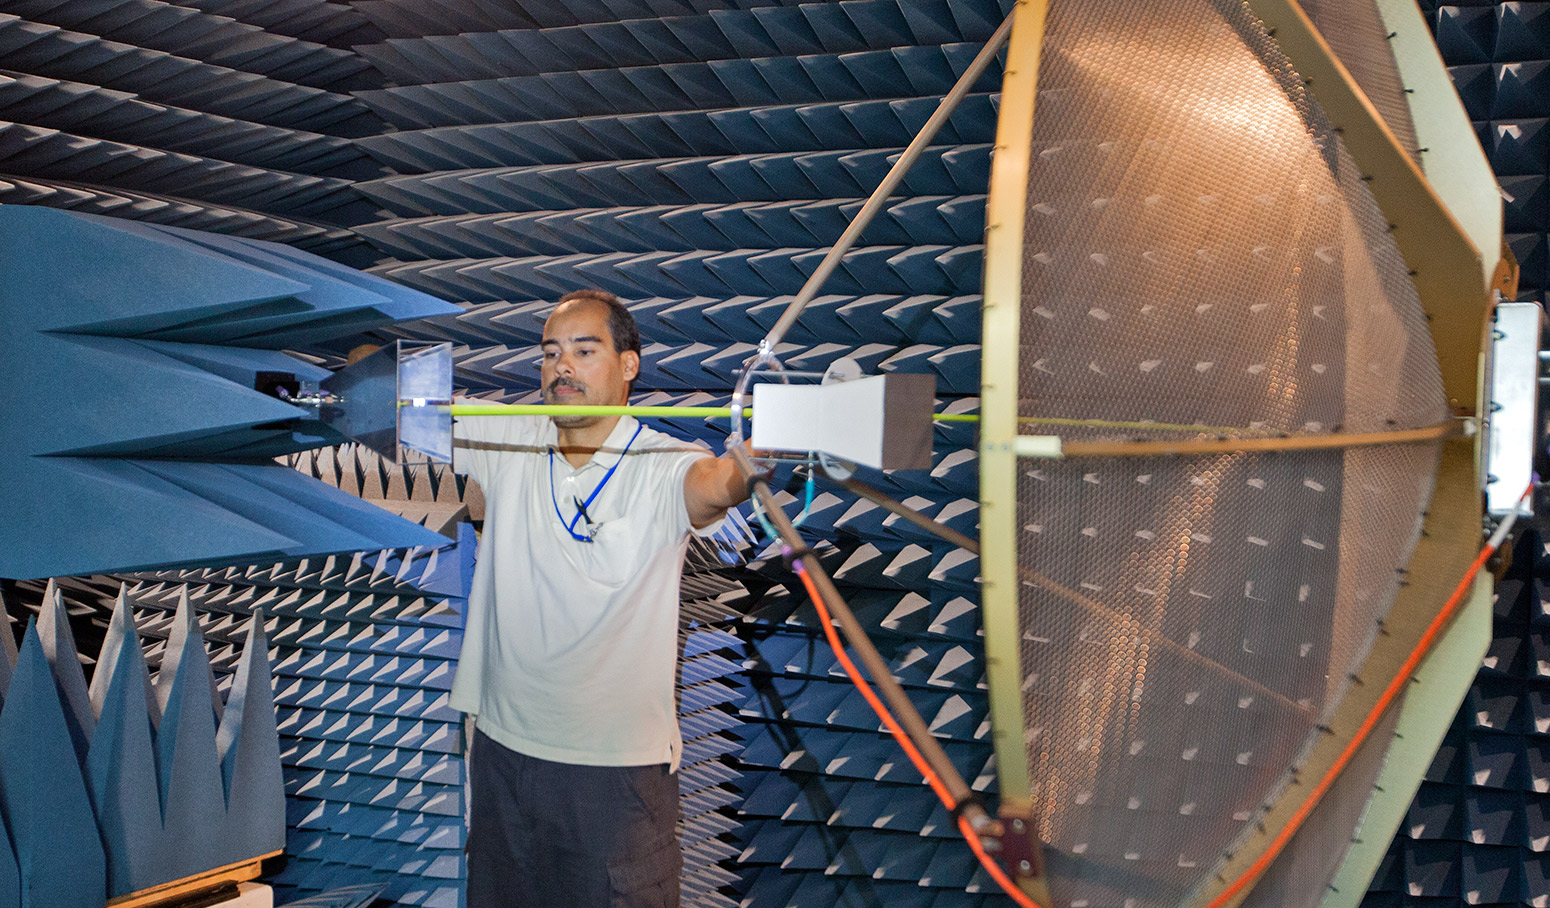 man adjusting sophisticated equipment in anechoic chamber